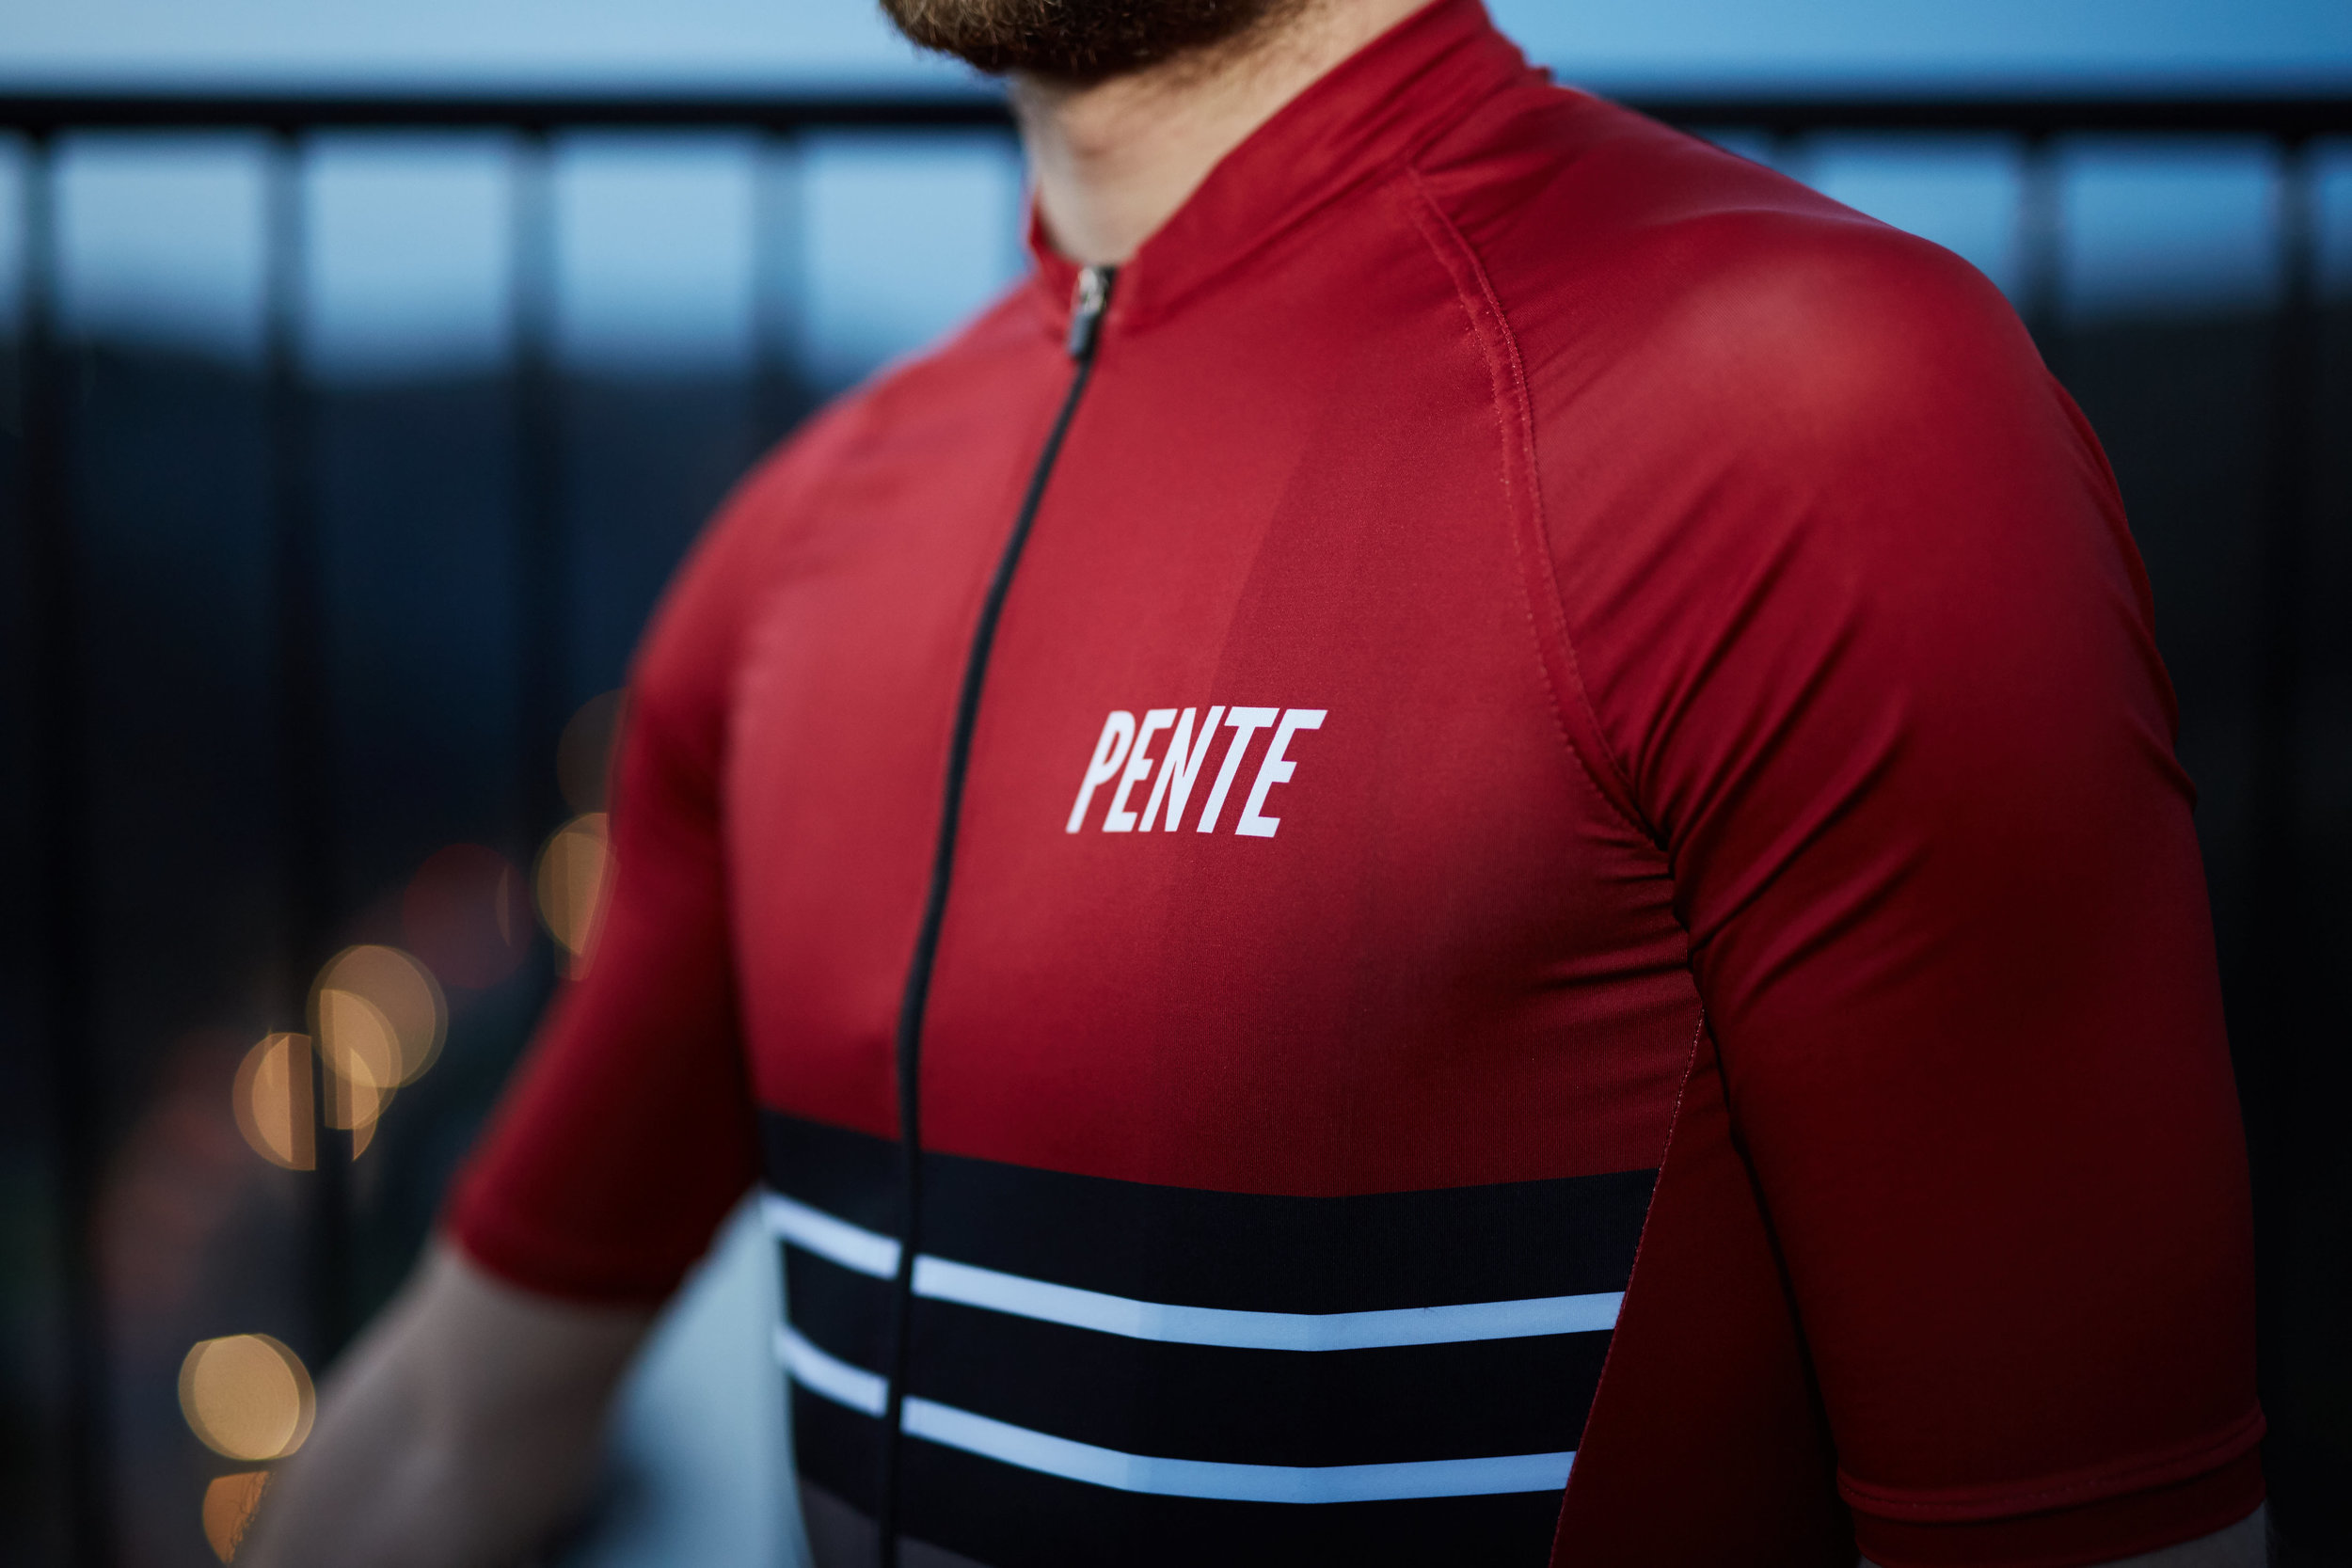 pente-cycling-branded-photography-5